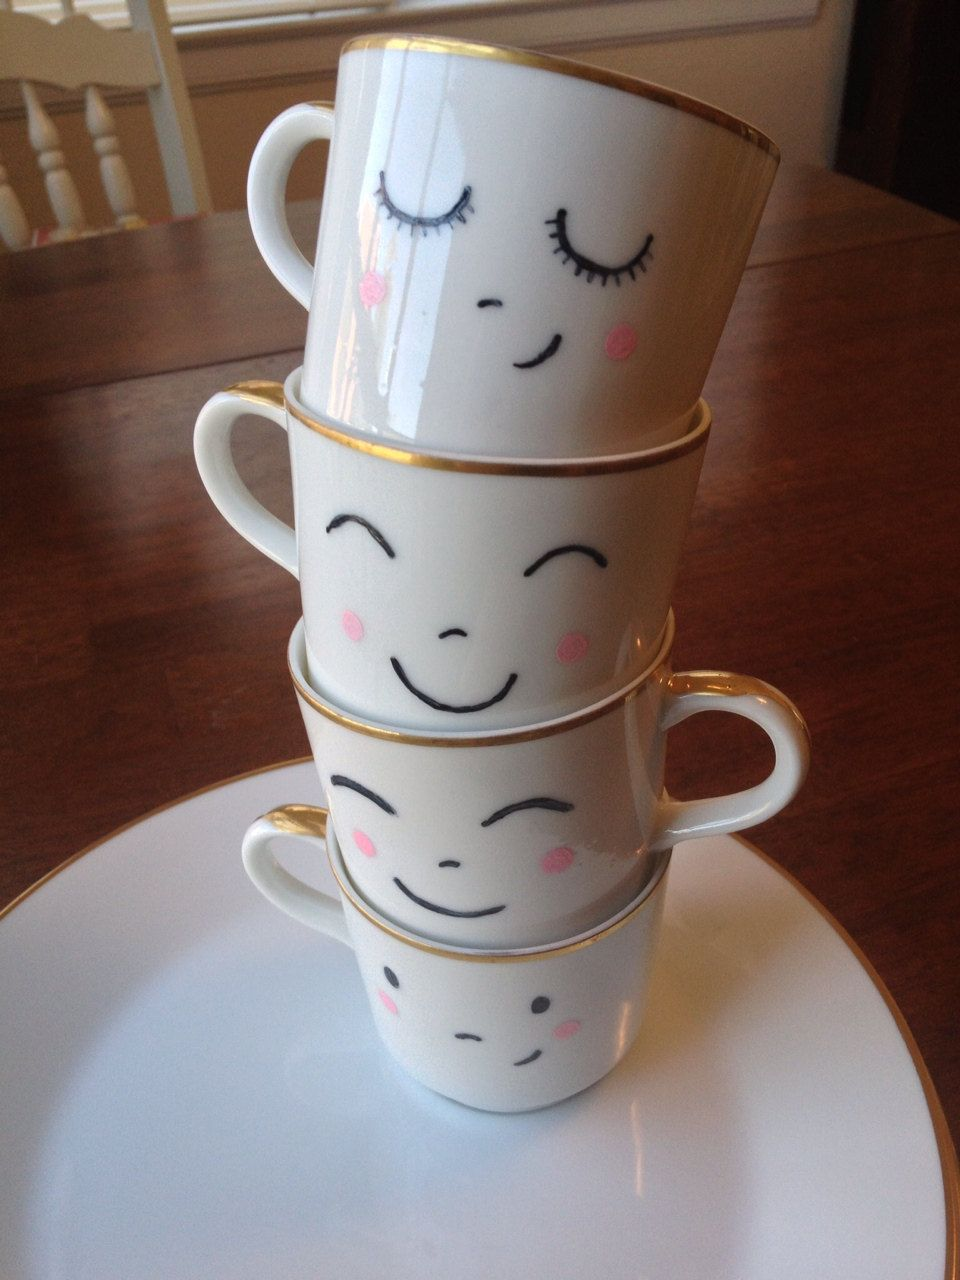 Smiley Face Coffee Mug I Could Draw Faces On Some Plain Coffee Cups Cute O D I Y